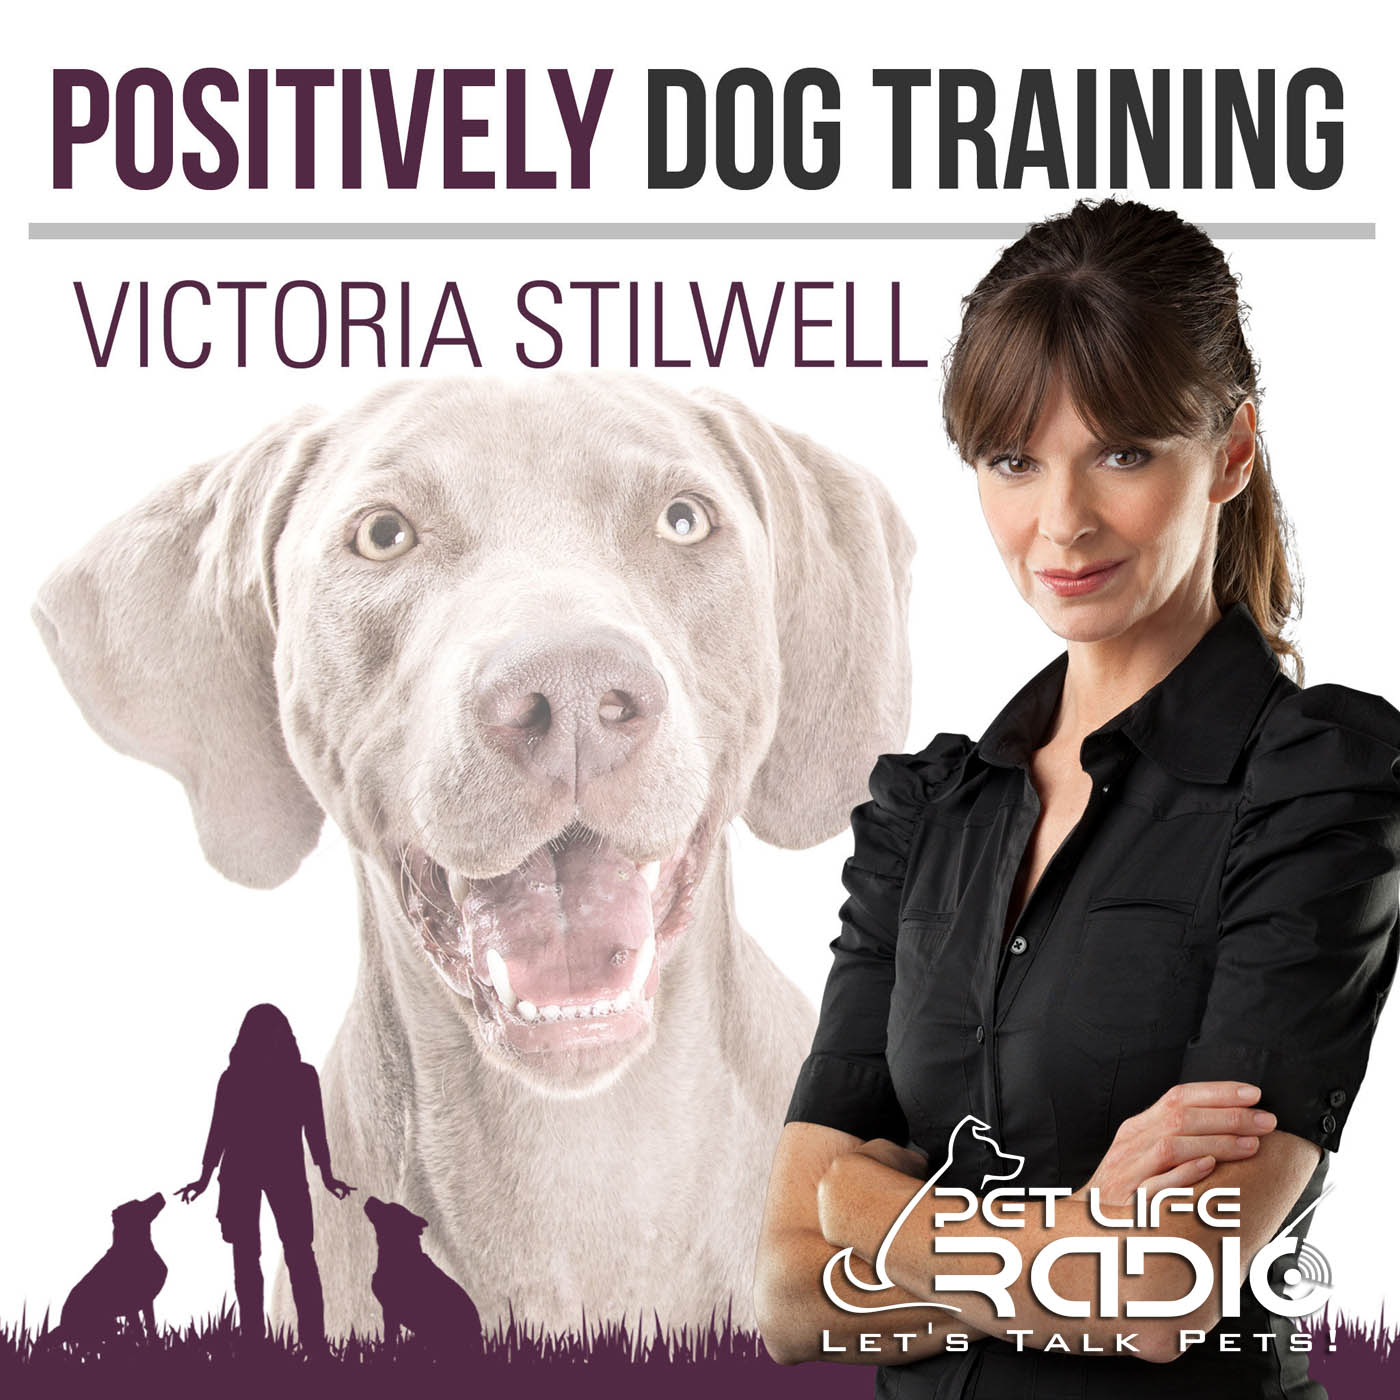 Positively Podcast - Victoria Stilwell - Pets & Animals on Pet Life Radio (PetLifeRadio.com)